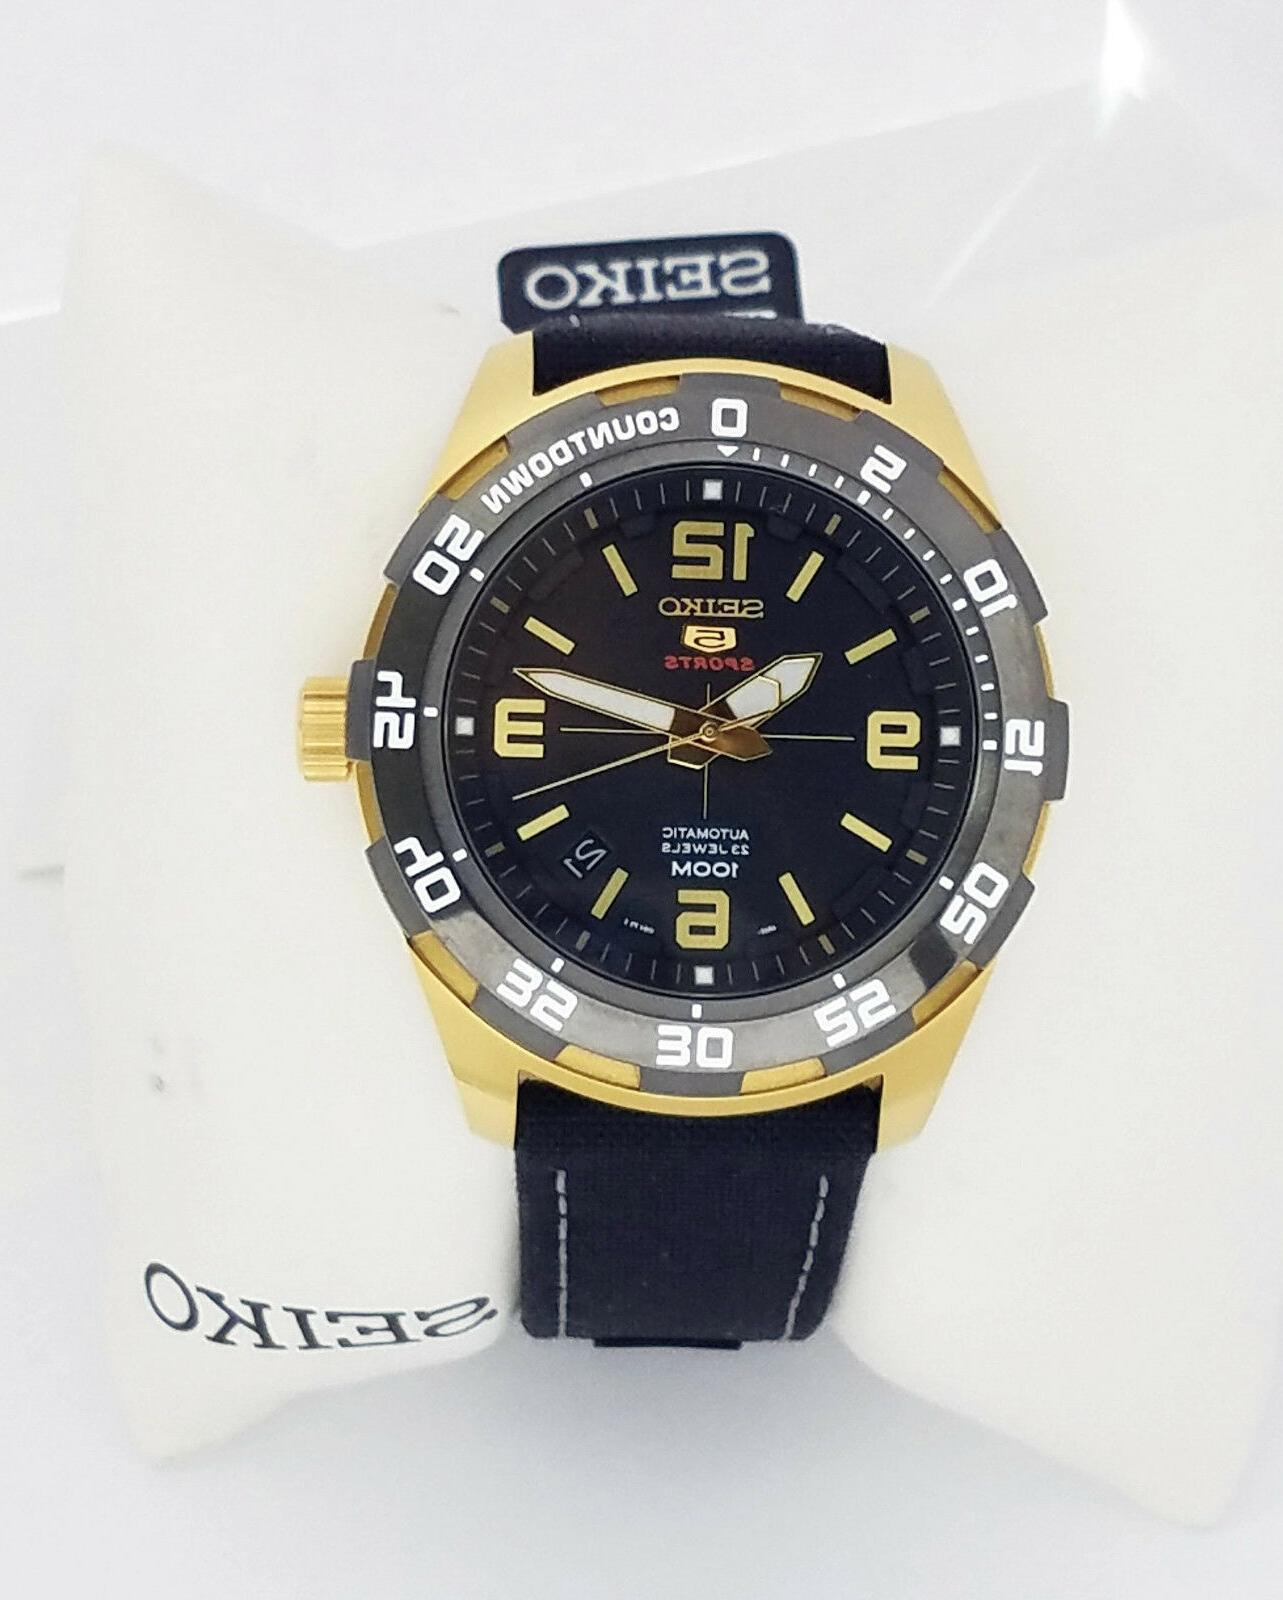 series 5 automatic black dial mens watch